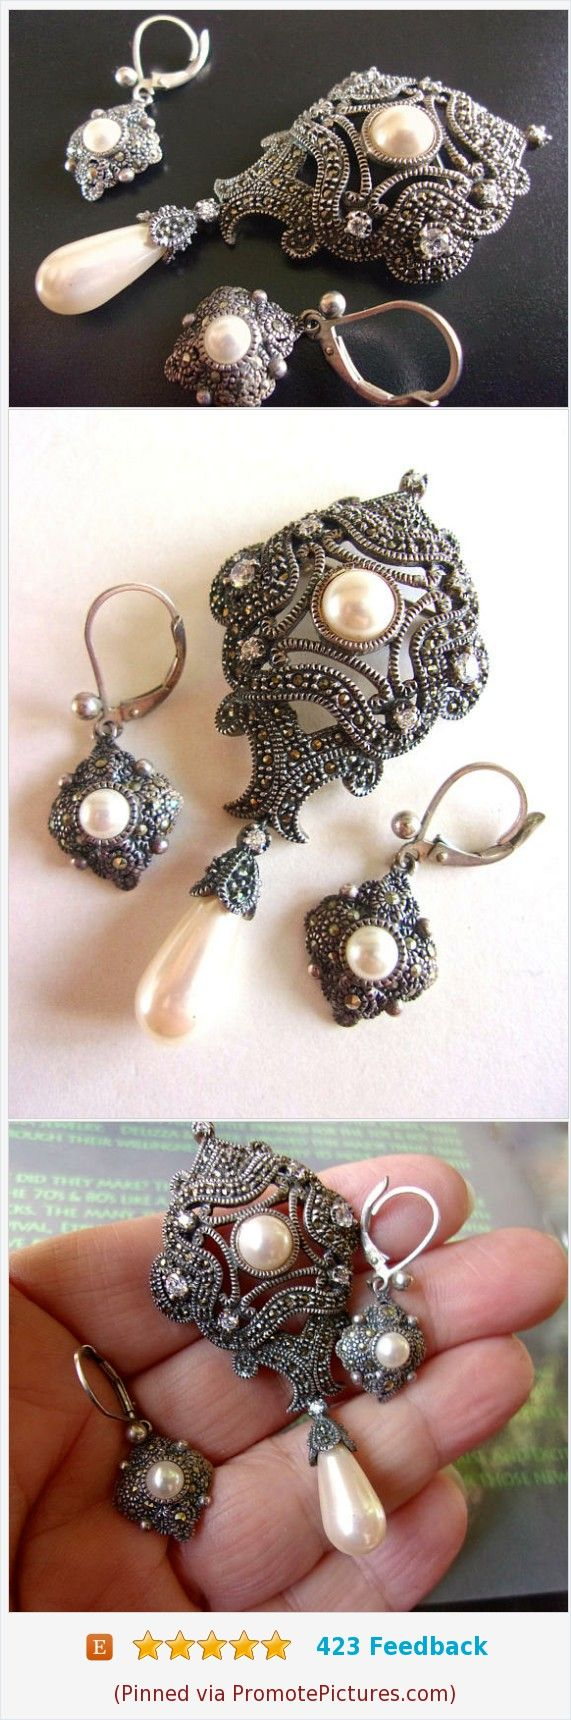 Marcasite Sterling Silver JUDITH JACK Brooch & Earrings, Victorian, Faux Pearl, Dangle, Vintage #judithjack #jewelryset #sterlingsilver #brooch https://www.etsy.com/RenaissanceFair/listing/559463124/marcasite-sterling-silver-judith-jack?ref=listings_manager_grid  (Pinned using https://PromotePictures.com)